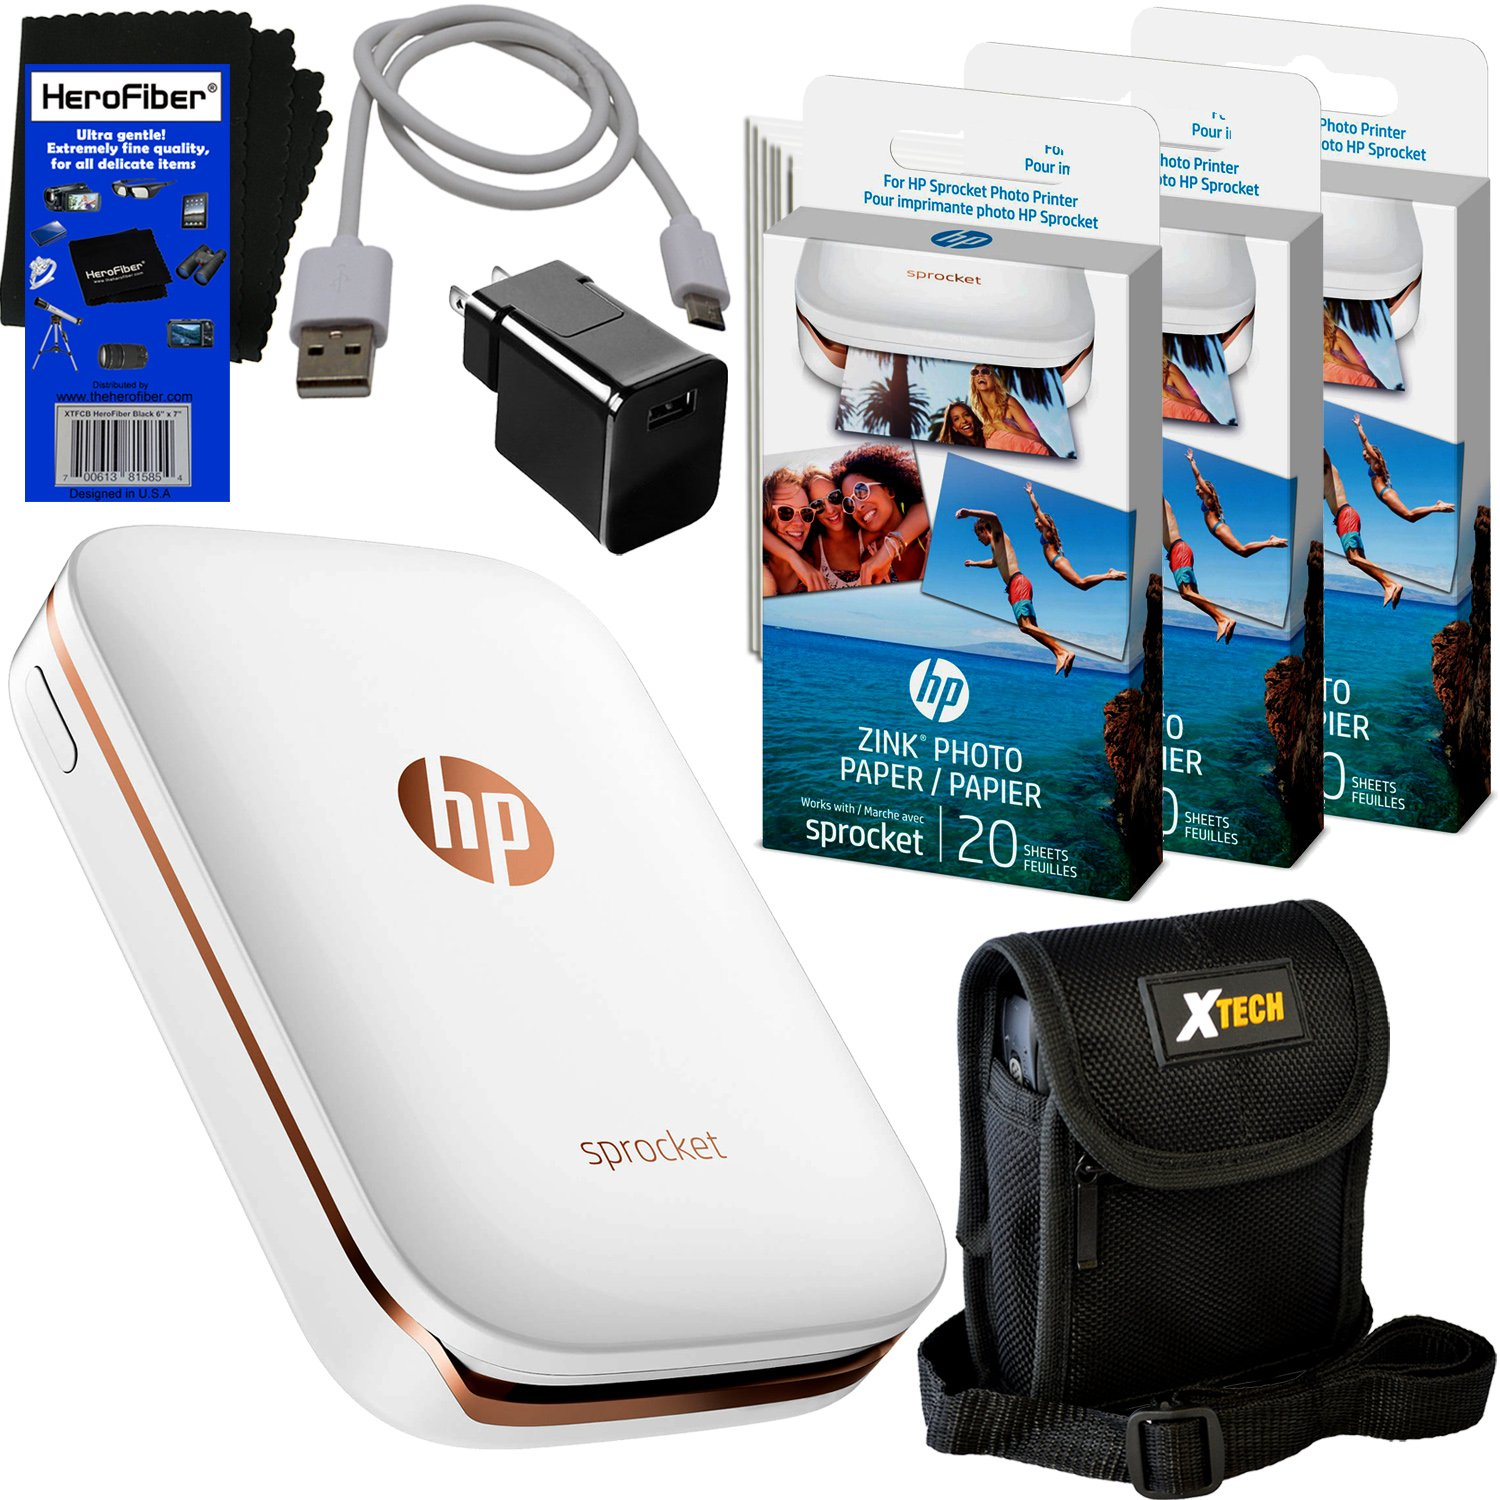 HP Sprocket Photo Printer, Print Social Media Photos on 2x3 Sticky-Backed Paper (White) + Photo Paper (70 sheets) + Protective Case + USB Cable with Wall Adapter + HeroFiber Gentle Cleaning Cloth